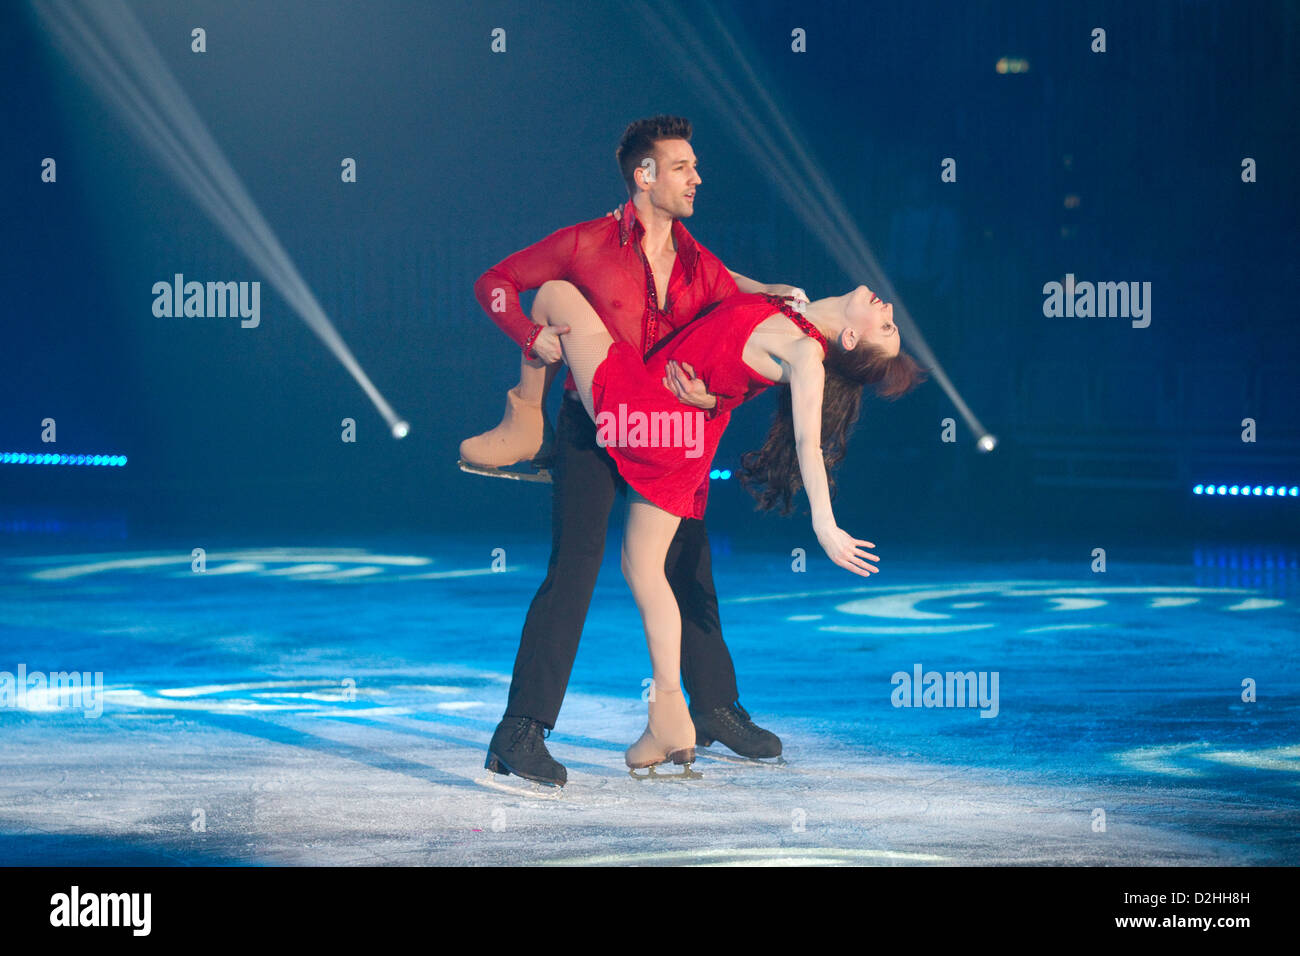 Celebrities on Ice show Member of the Russian Ice Stars - Stock Image